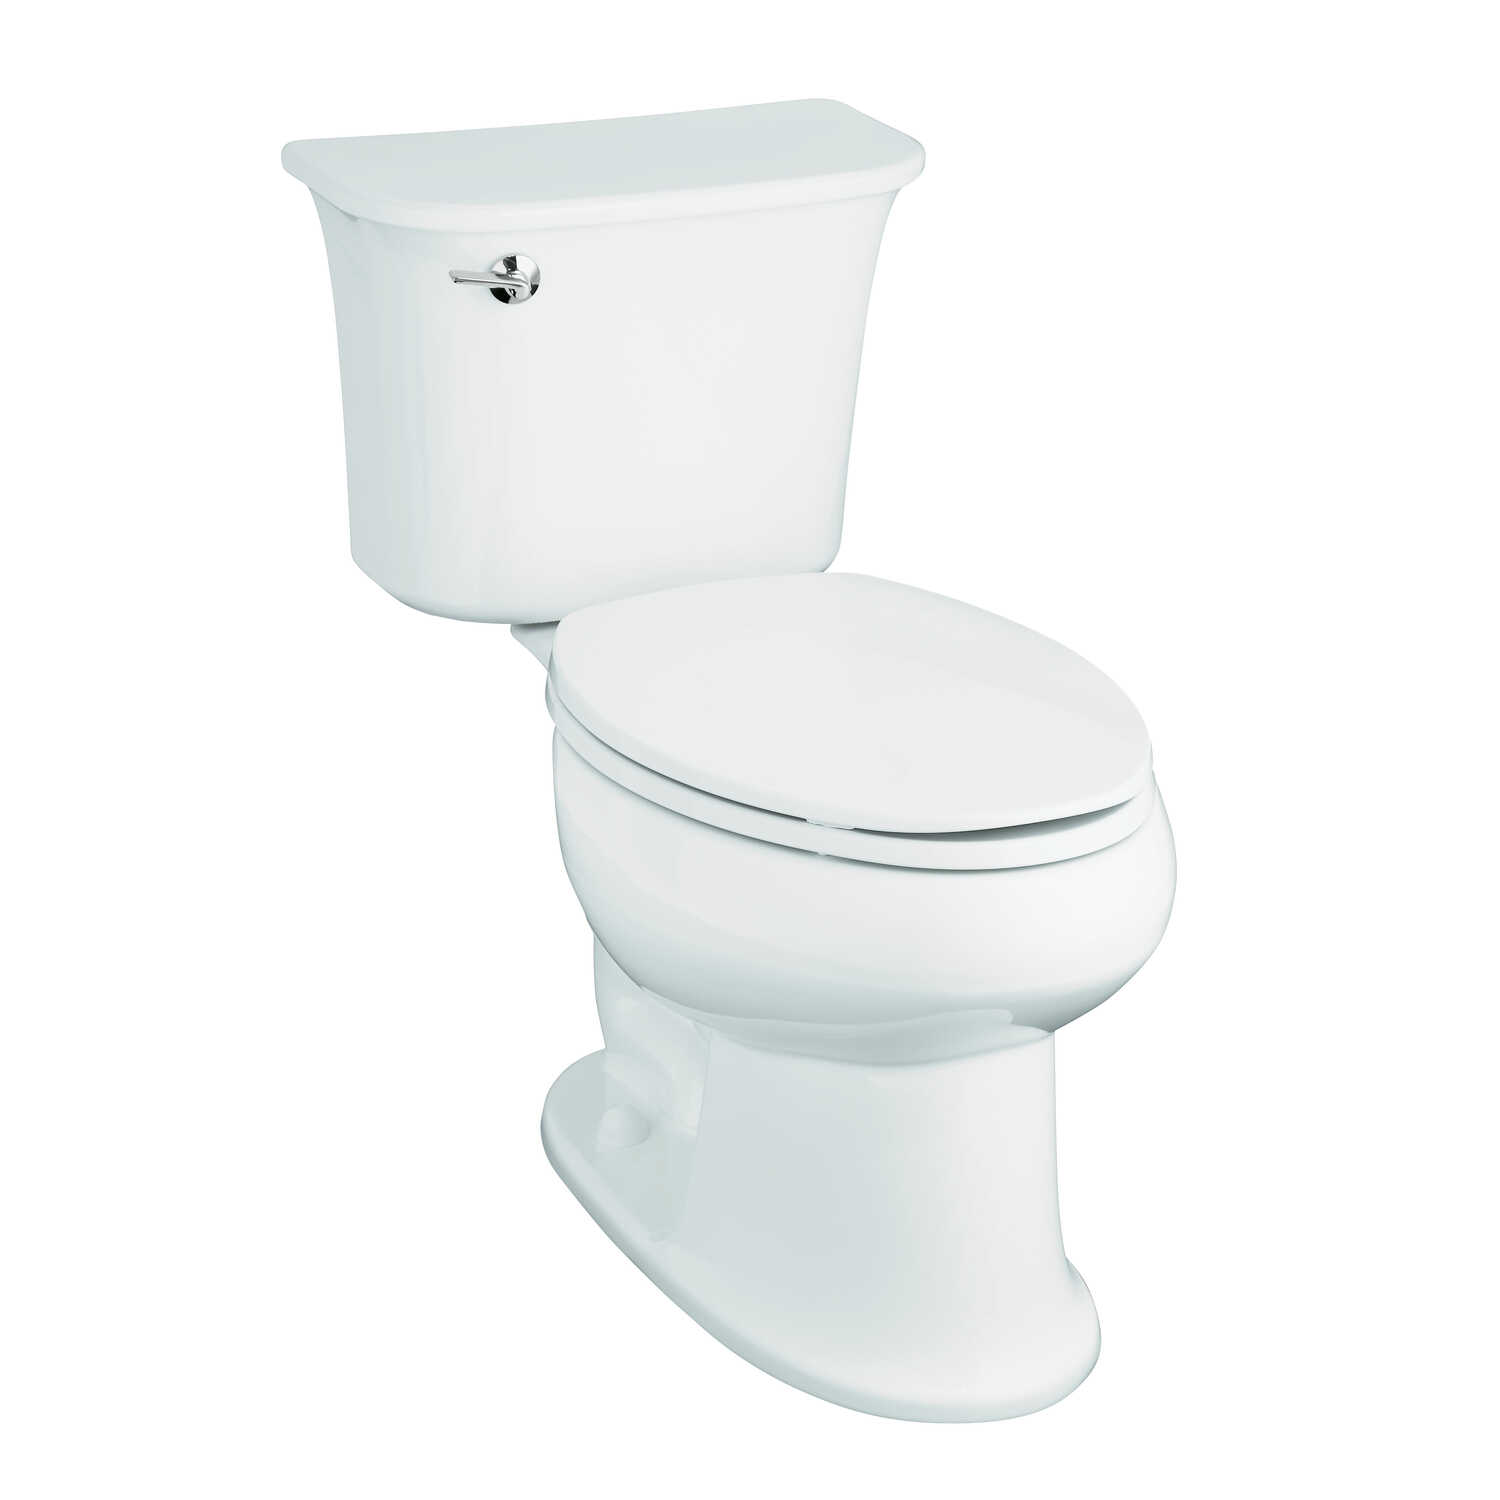 Sterling  Stinson  Complete Toilet  1.28 gal. ADA Compliant